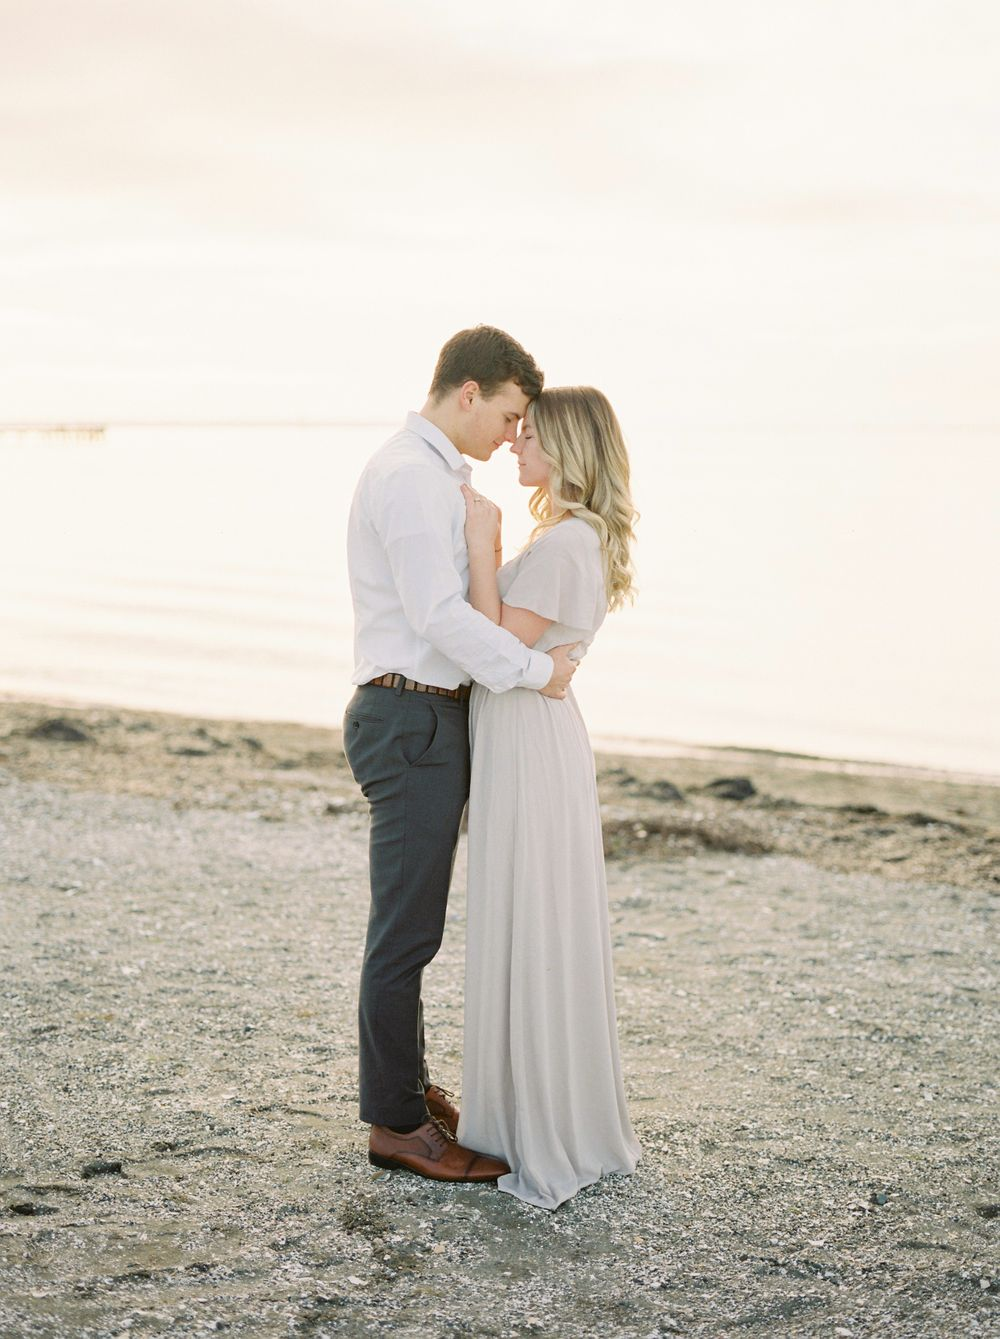 Engagement Session -Melissa Mae Photography - Vancouver, BC